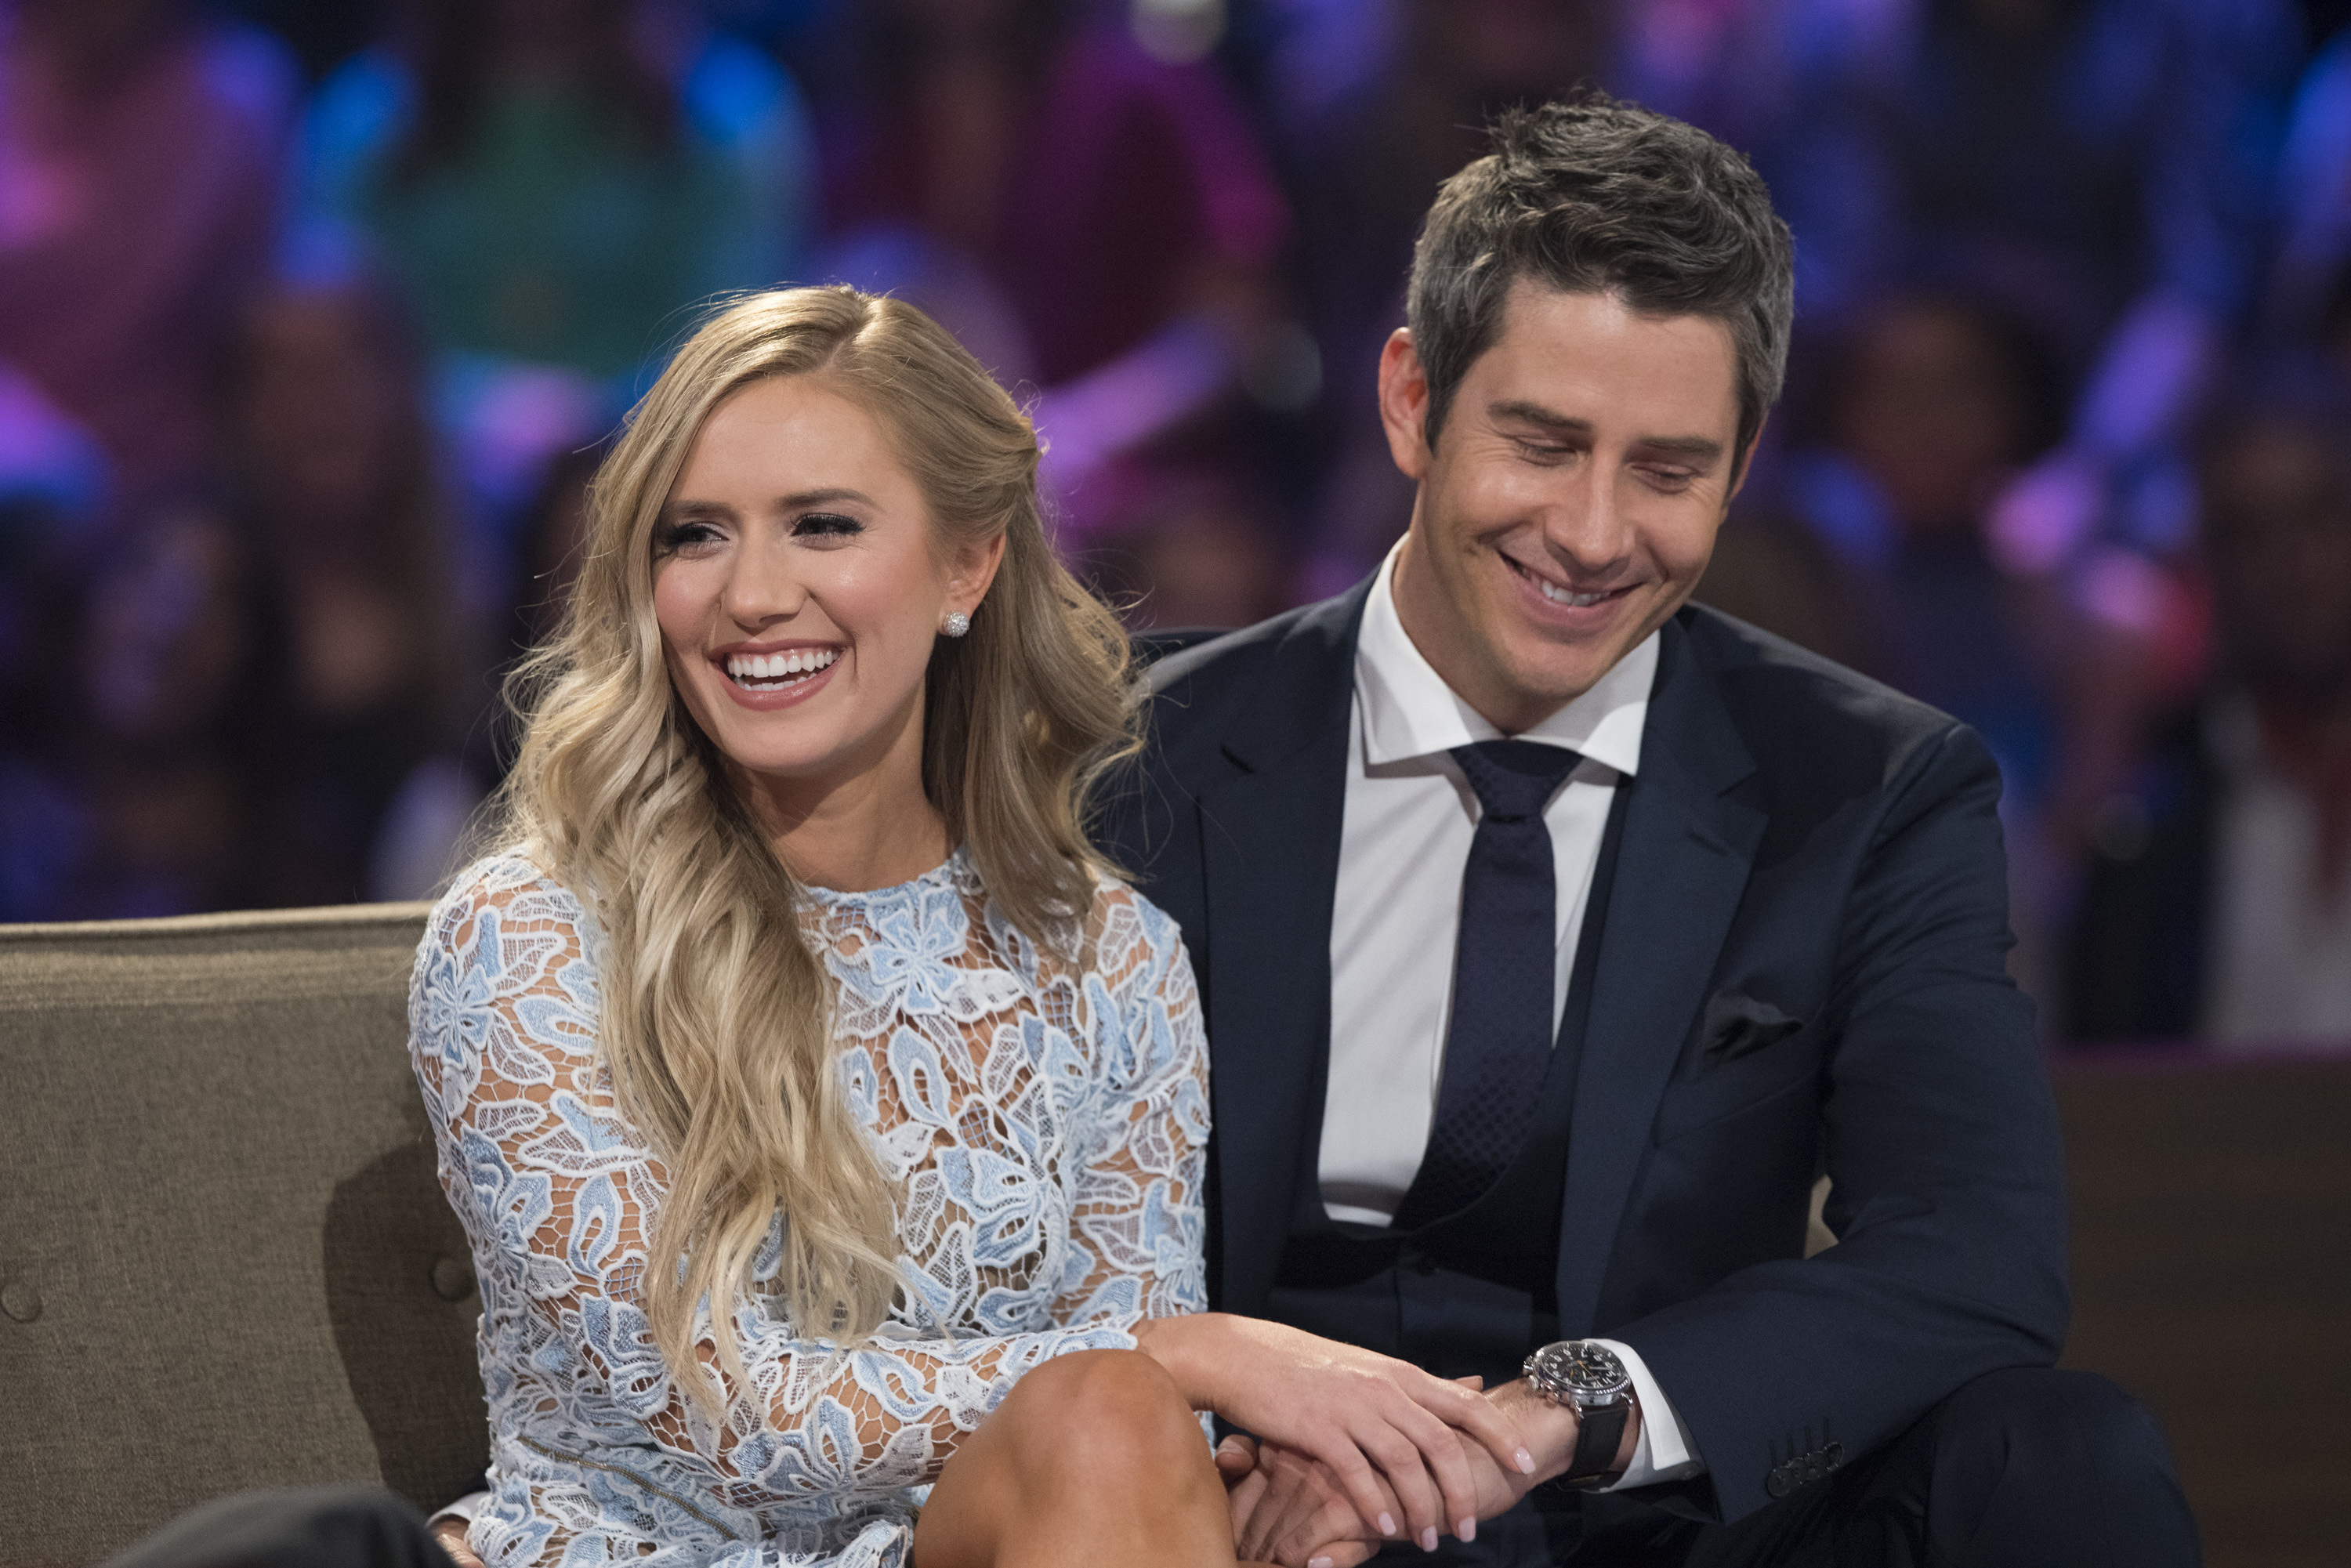 Bachelor Arie Luyendyk Jr Sets A Wedding Date And Location